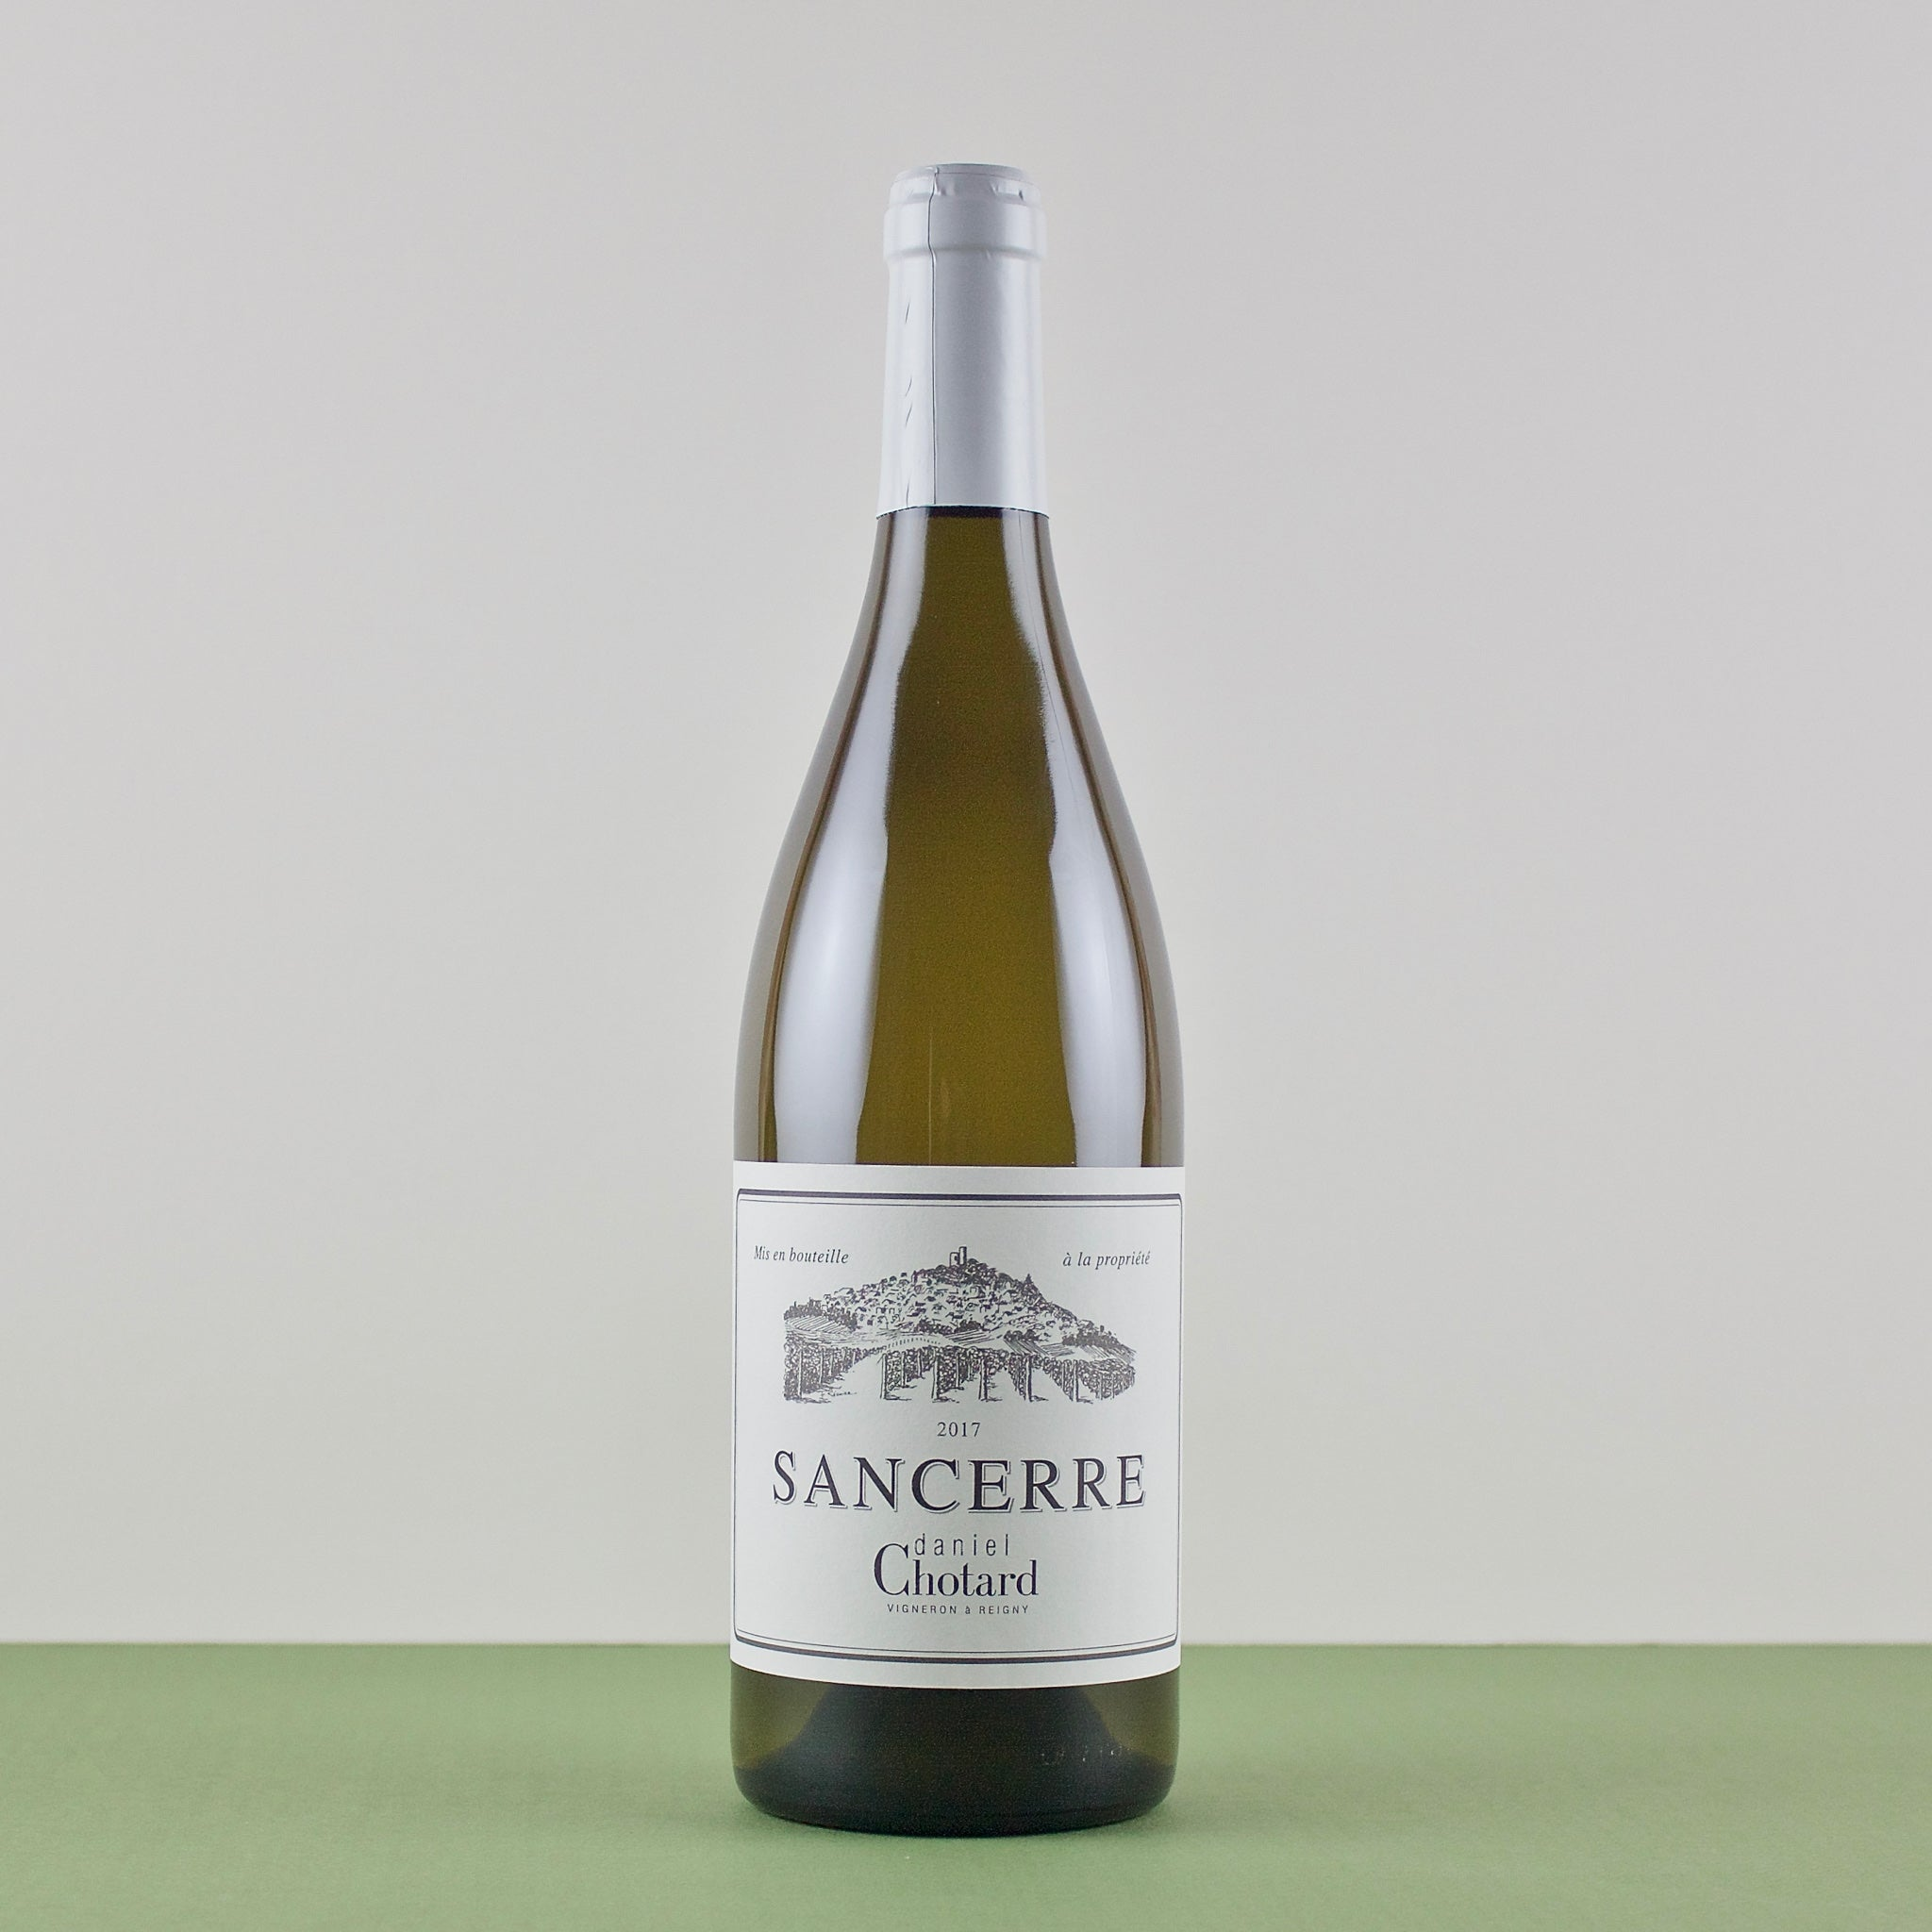 Sancerre, Daniel Chotard, Loire, France